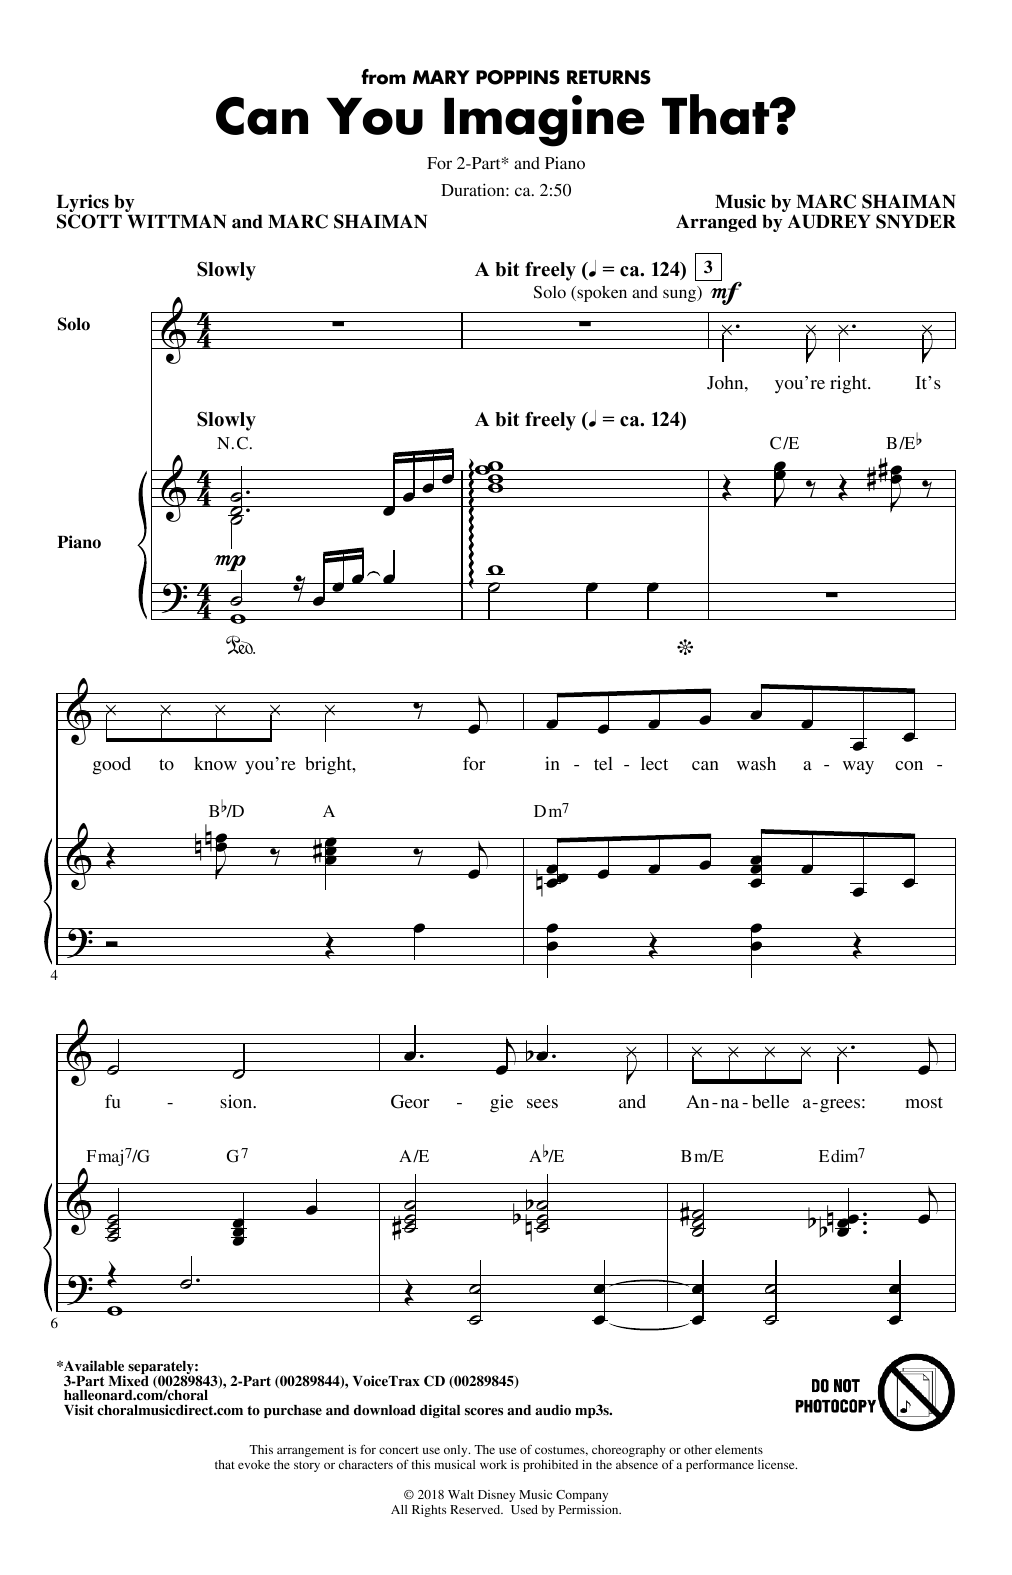 Can You Imagine That? (from Mary Poppins Returns) (arr. Audrey Snyder) (2-Part Choir)